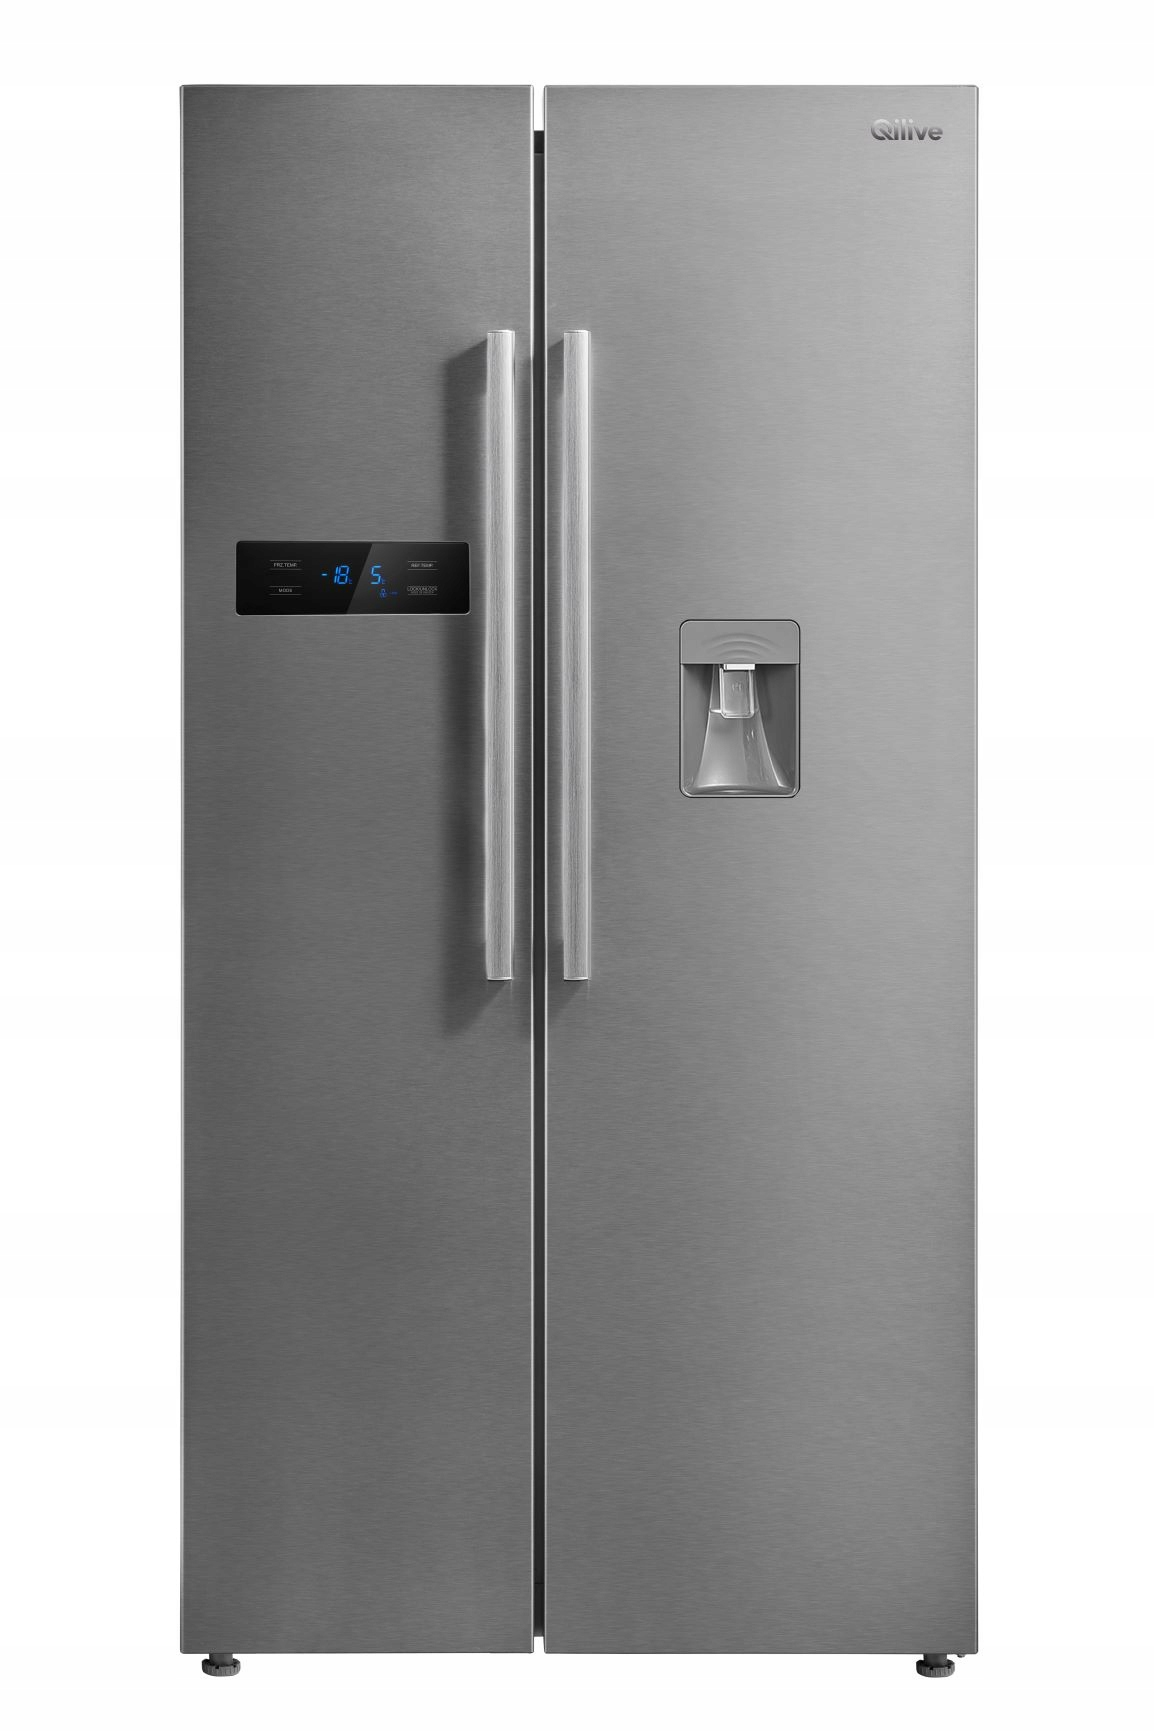 Item QILIVE refrigerator Side by Side 6517 A+ No Frost, 510l